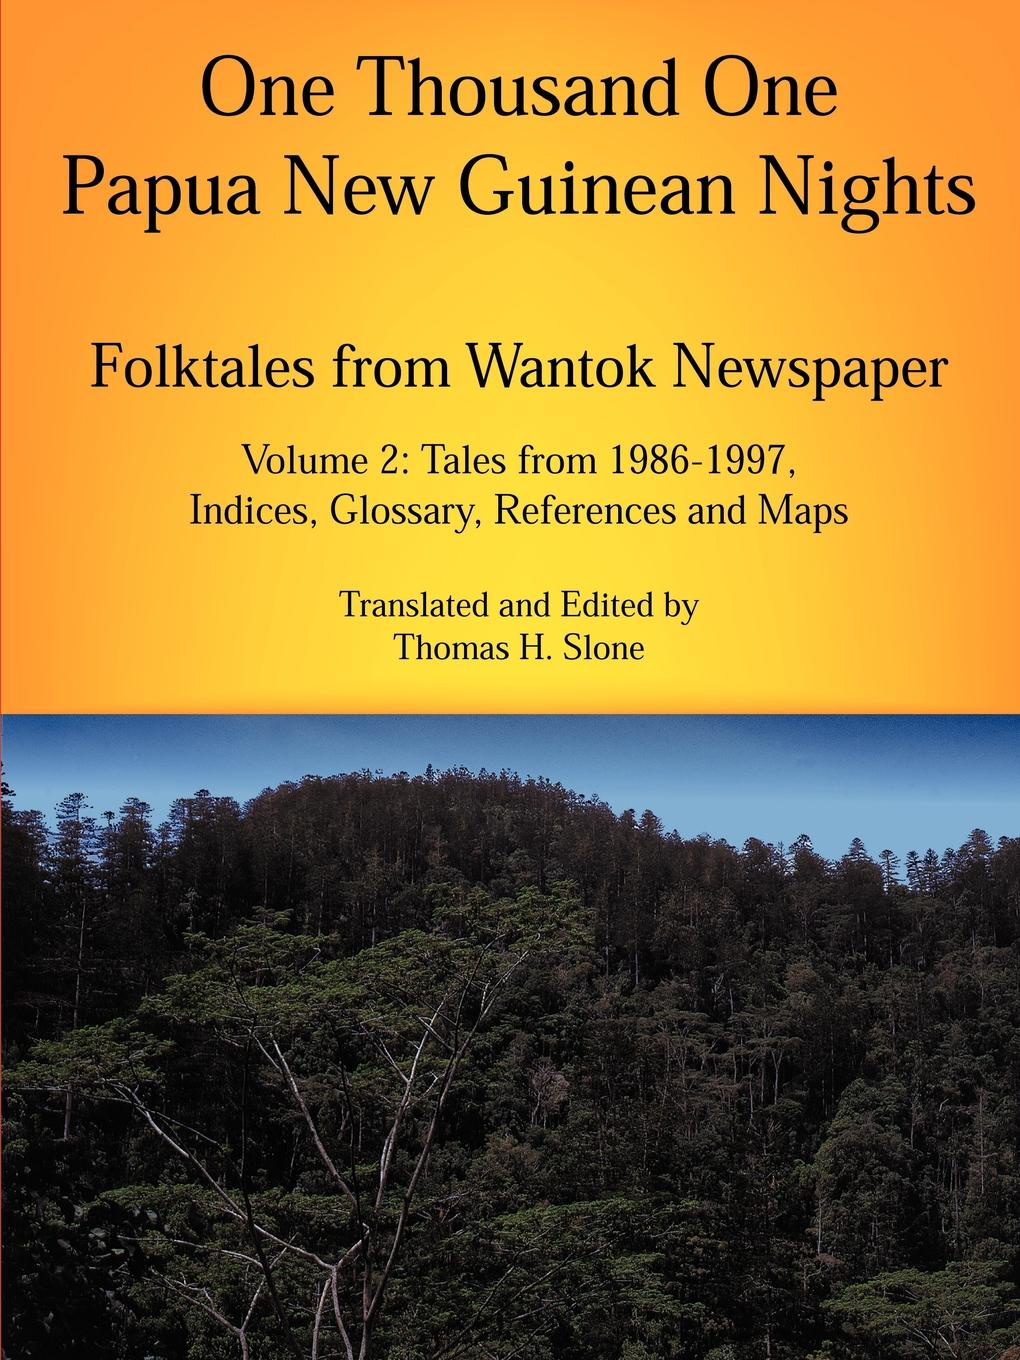 Thomas H. Slone One Thousand One Papua New Guinean Nights. Folktales from Wantok Newspapers: Volume 2, Tales from 1986-1997 world folktales level 5